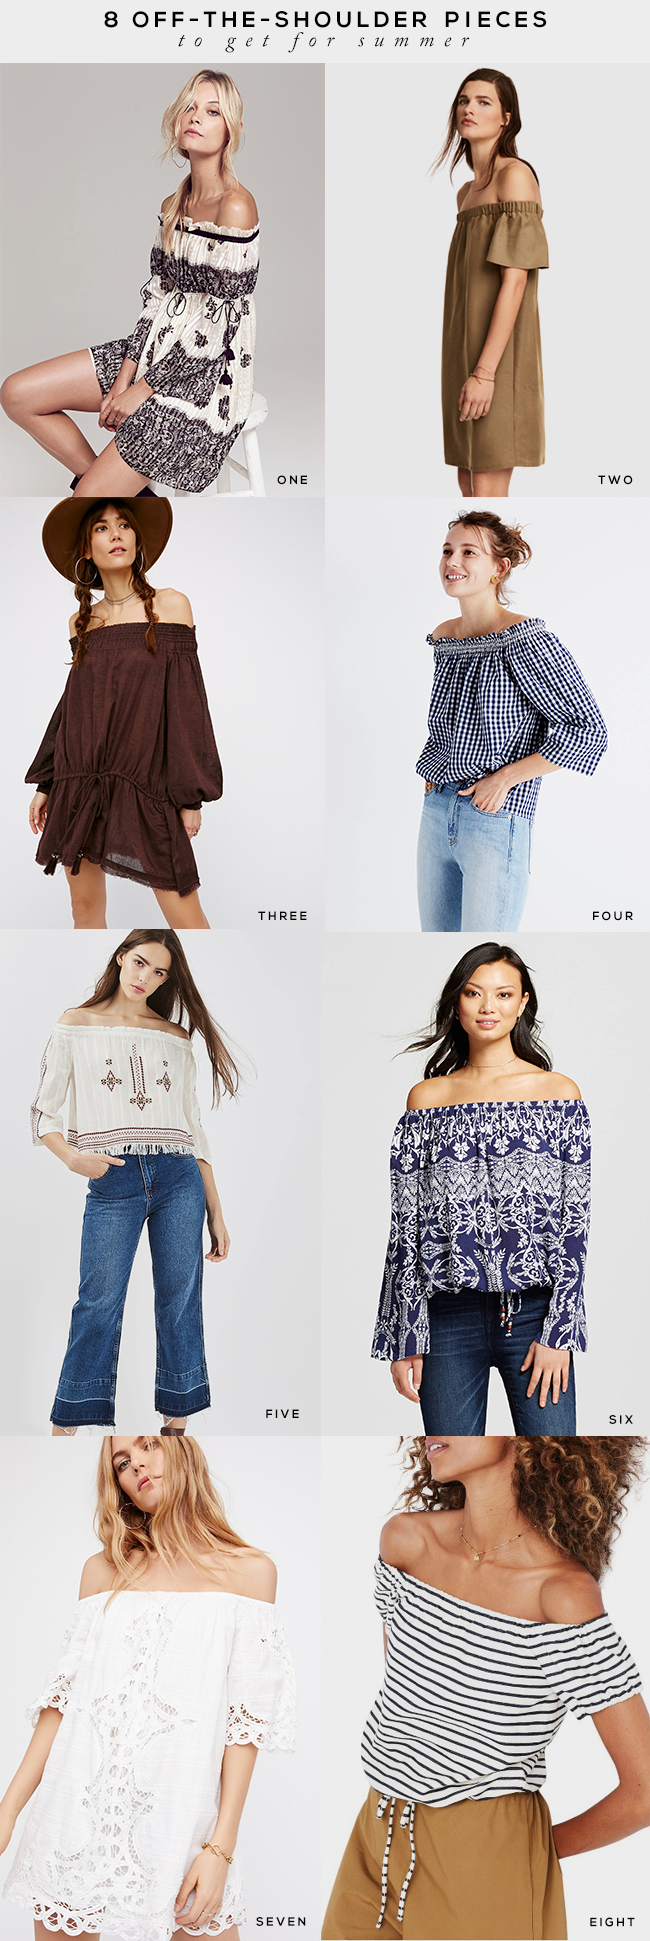 8 Off-The-Shoulder Pieces To Get For Summer